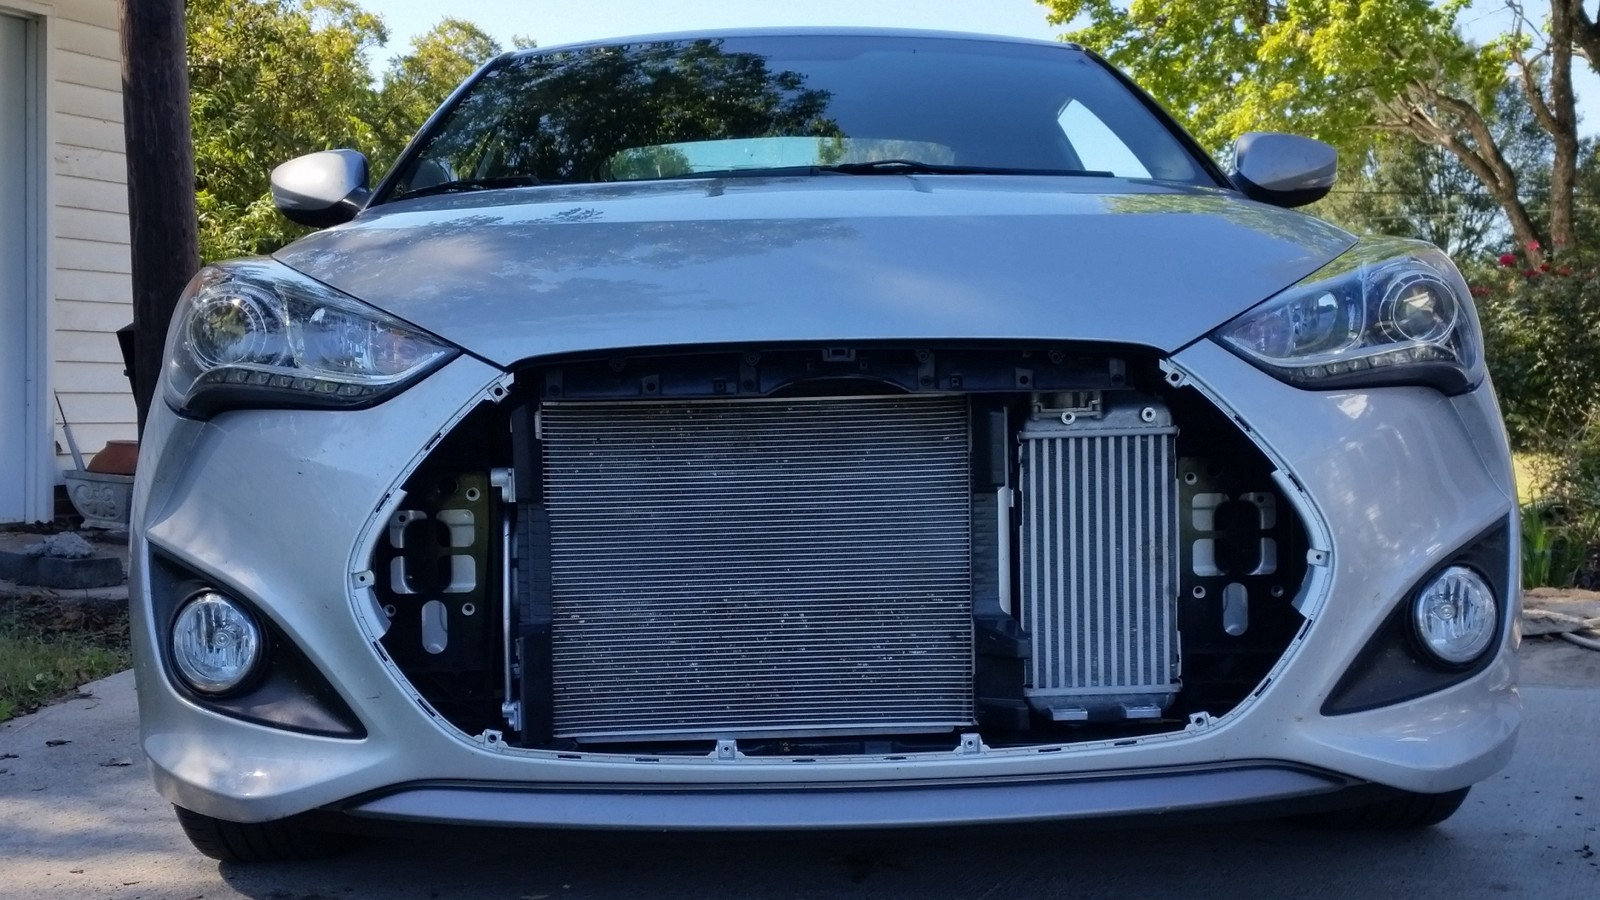 2015 Hyundai Veloster Turbo base 1/4 mile Drag Racing timeslip specs ...